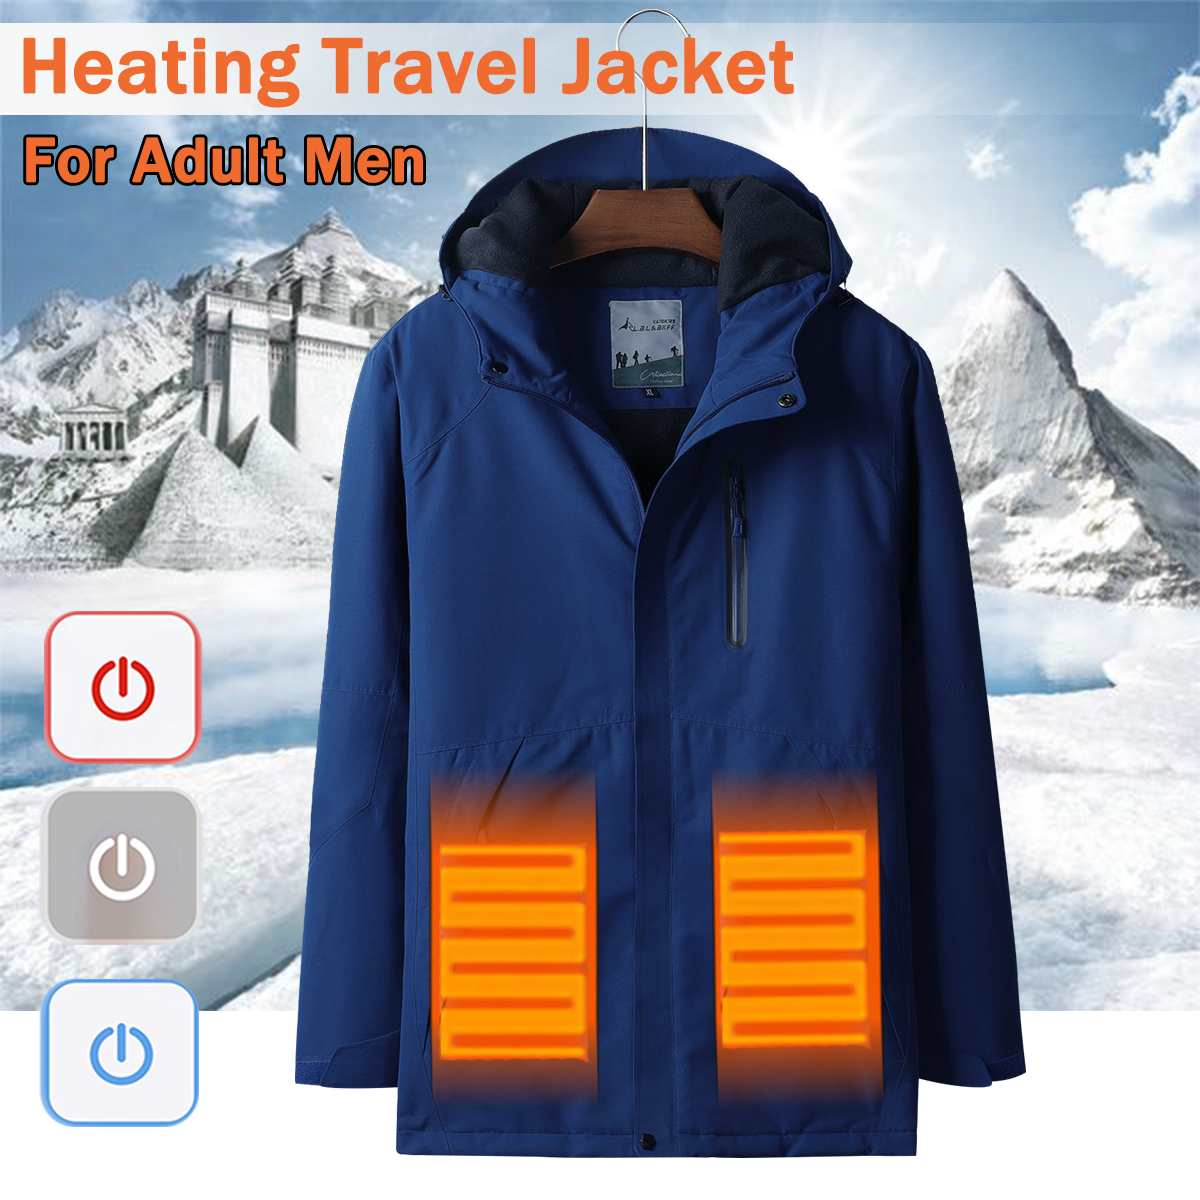 Waterproof Electric Heating Heaed Warm USB Hooded Travel Thick USB Heating Cotton Jacket Outdoor Windbreaker Hiking CostWaterproof Electric Heating Heaed Warm USB Hooded Travel Thick USB Heating Cotton Jacket Outdoor Windbreaker Hiking Cost